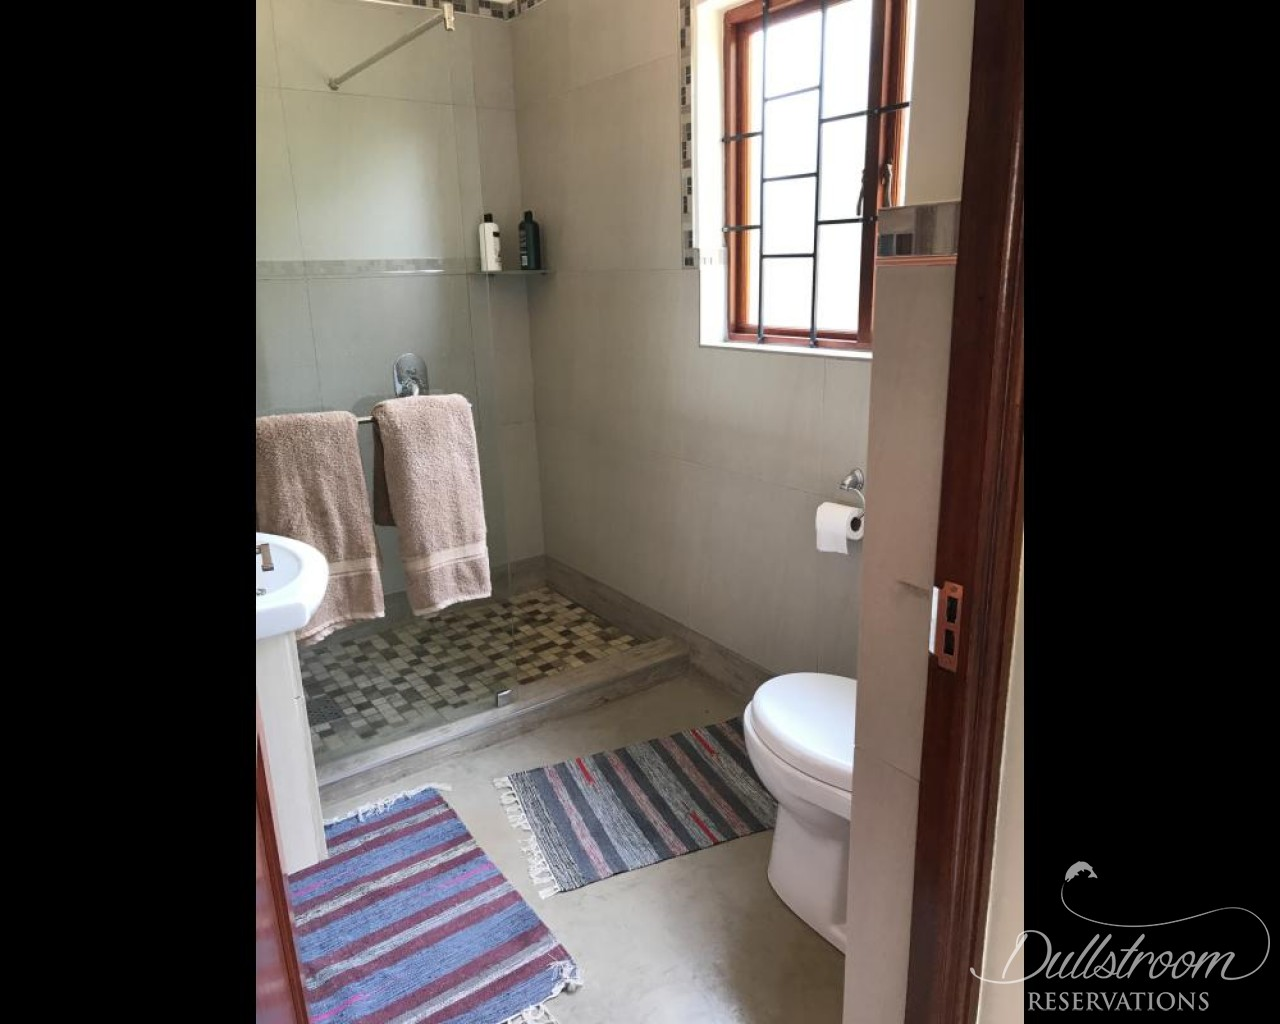 Rueby\'s - accommodation in Dullstroom | Dullstroom Reservations Online